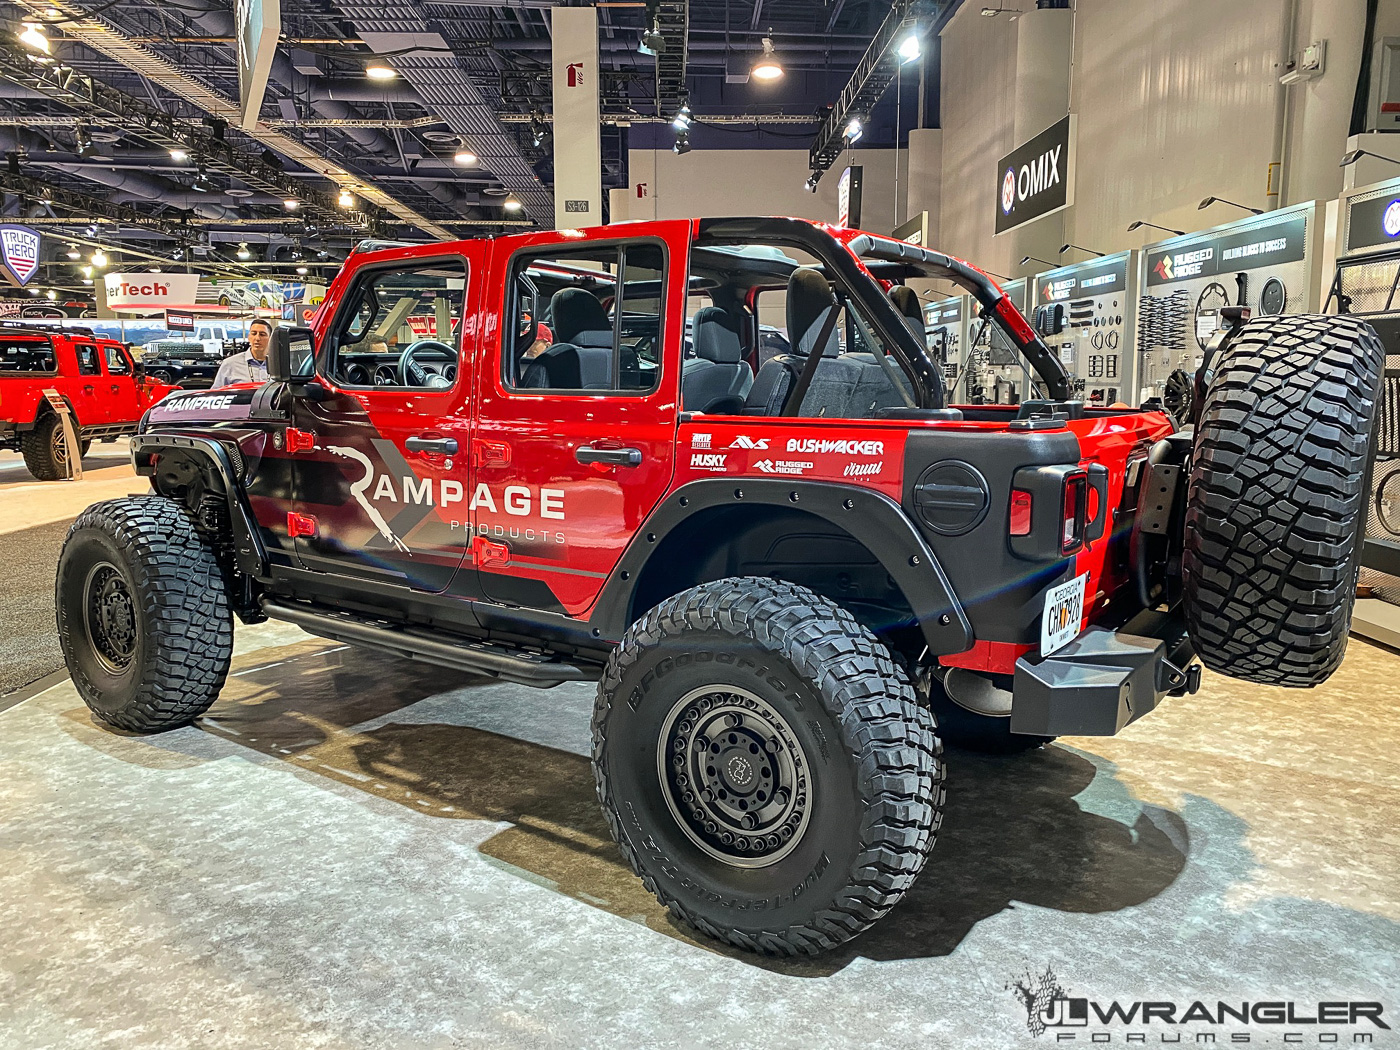 Rampage-JLU-Jeep-Wrangler-SEMA-Build-10.jpg